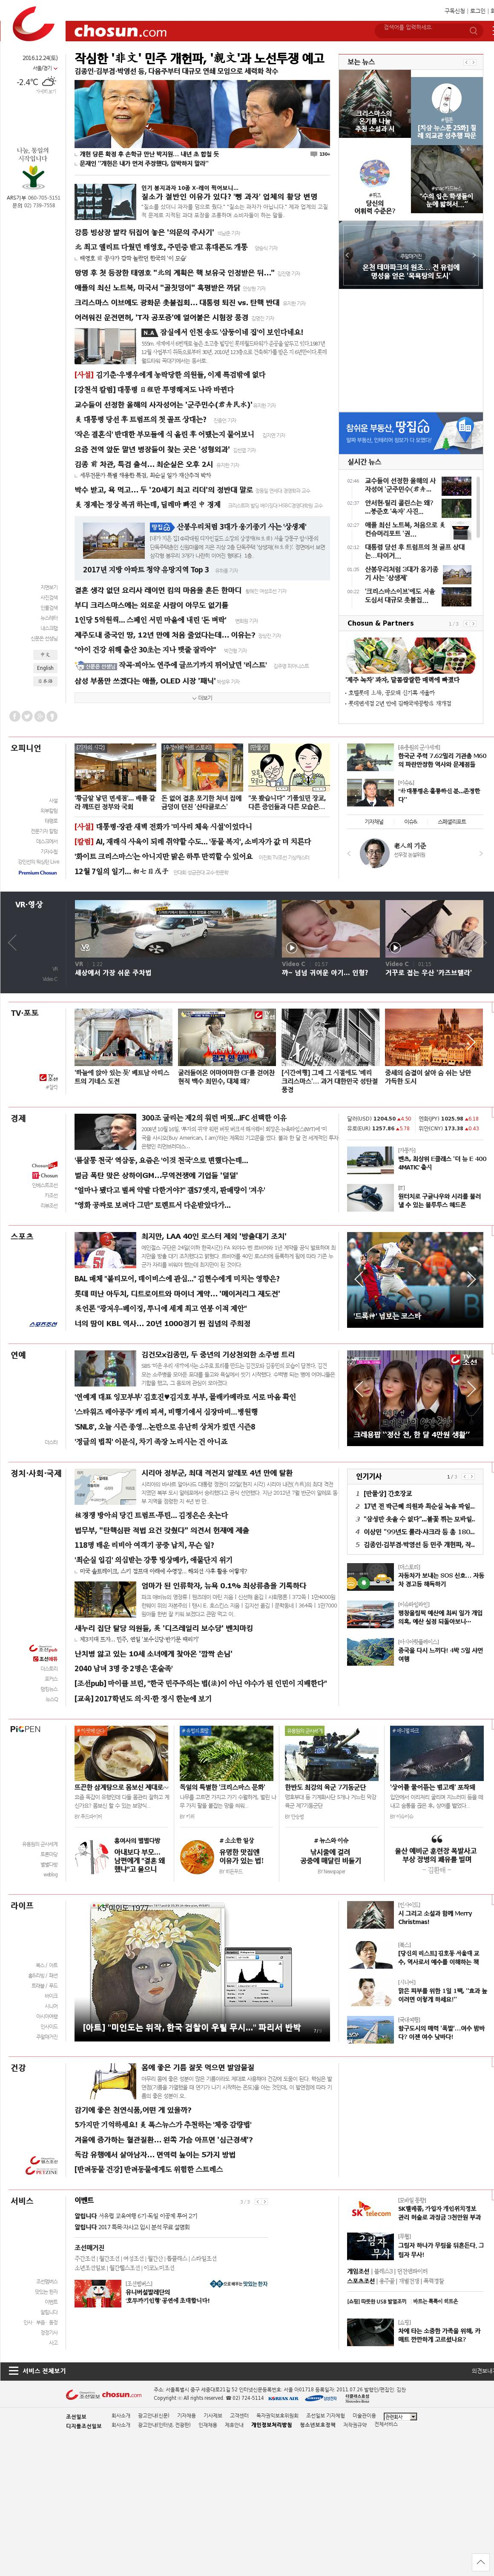 chosun.com at Saturday Dec. 24, 2016, 3:02 a.m. UTC